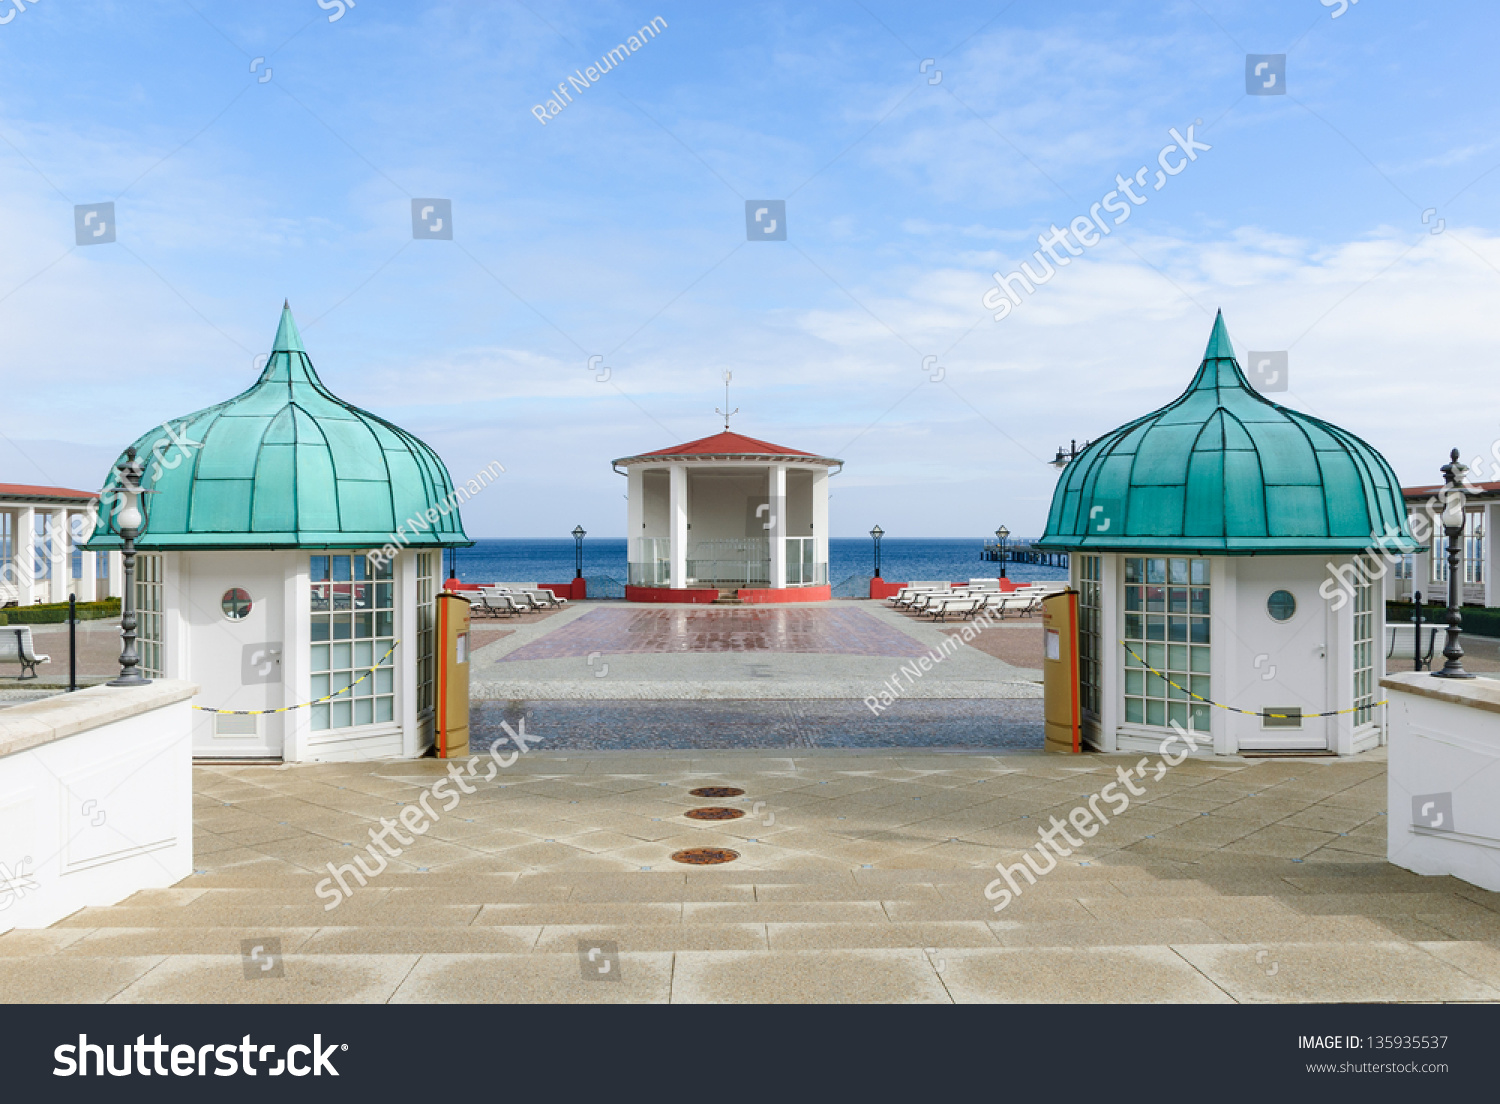 Square Spa Resort Binz Pavilion Benches Stock Photo 135935537 ...